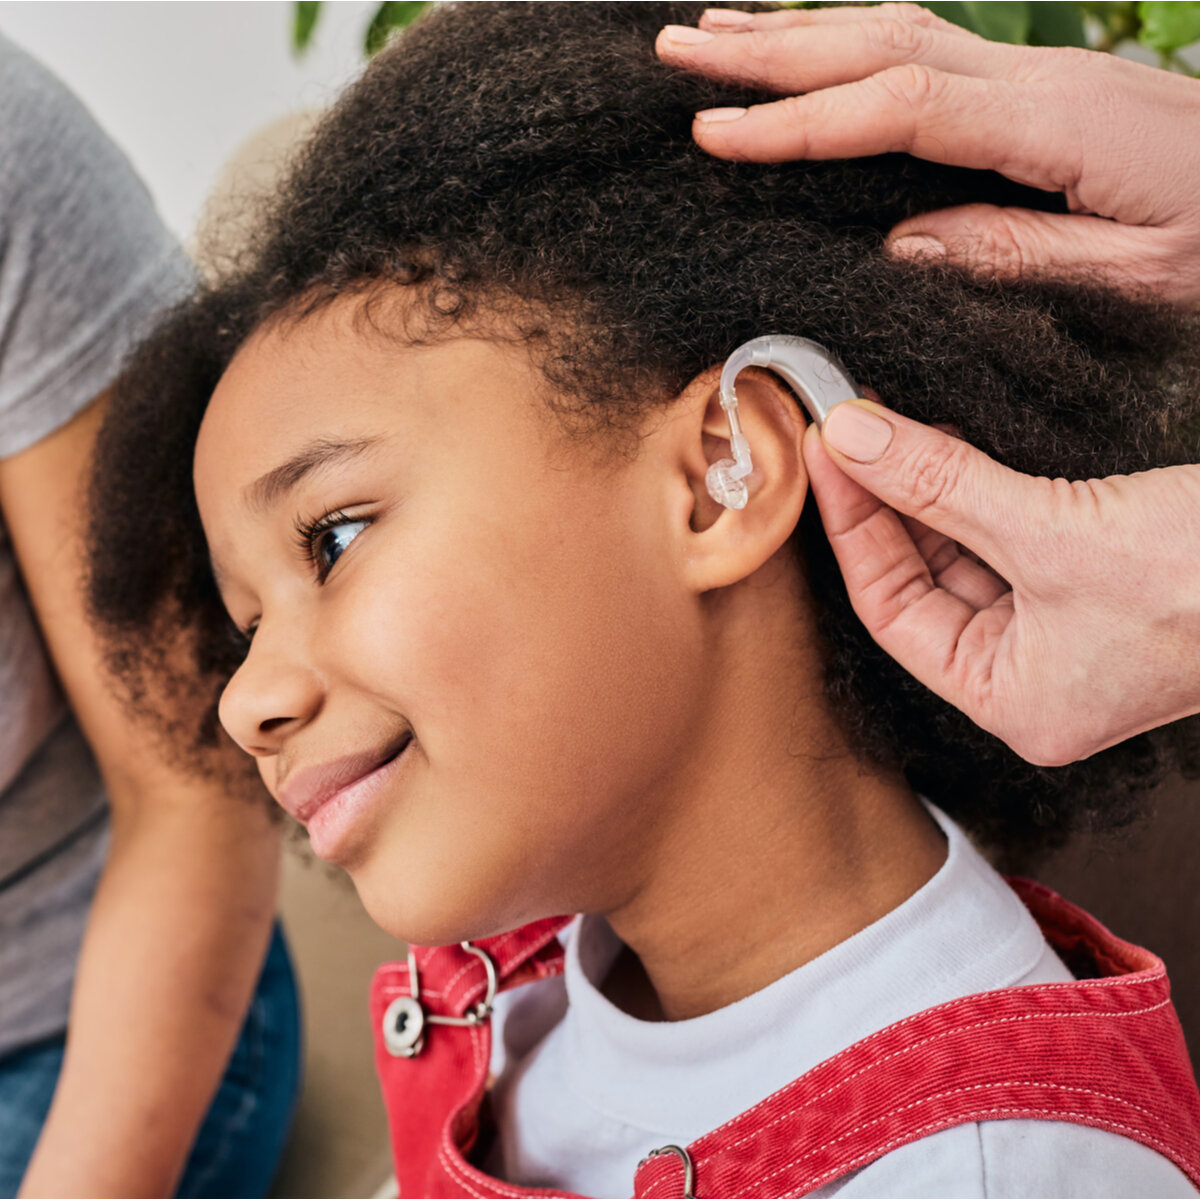 Don't Miss A Single Word With These Great Hearing Aids!